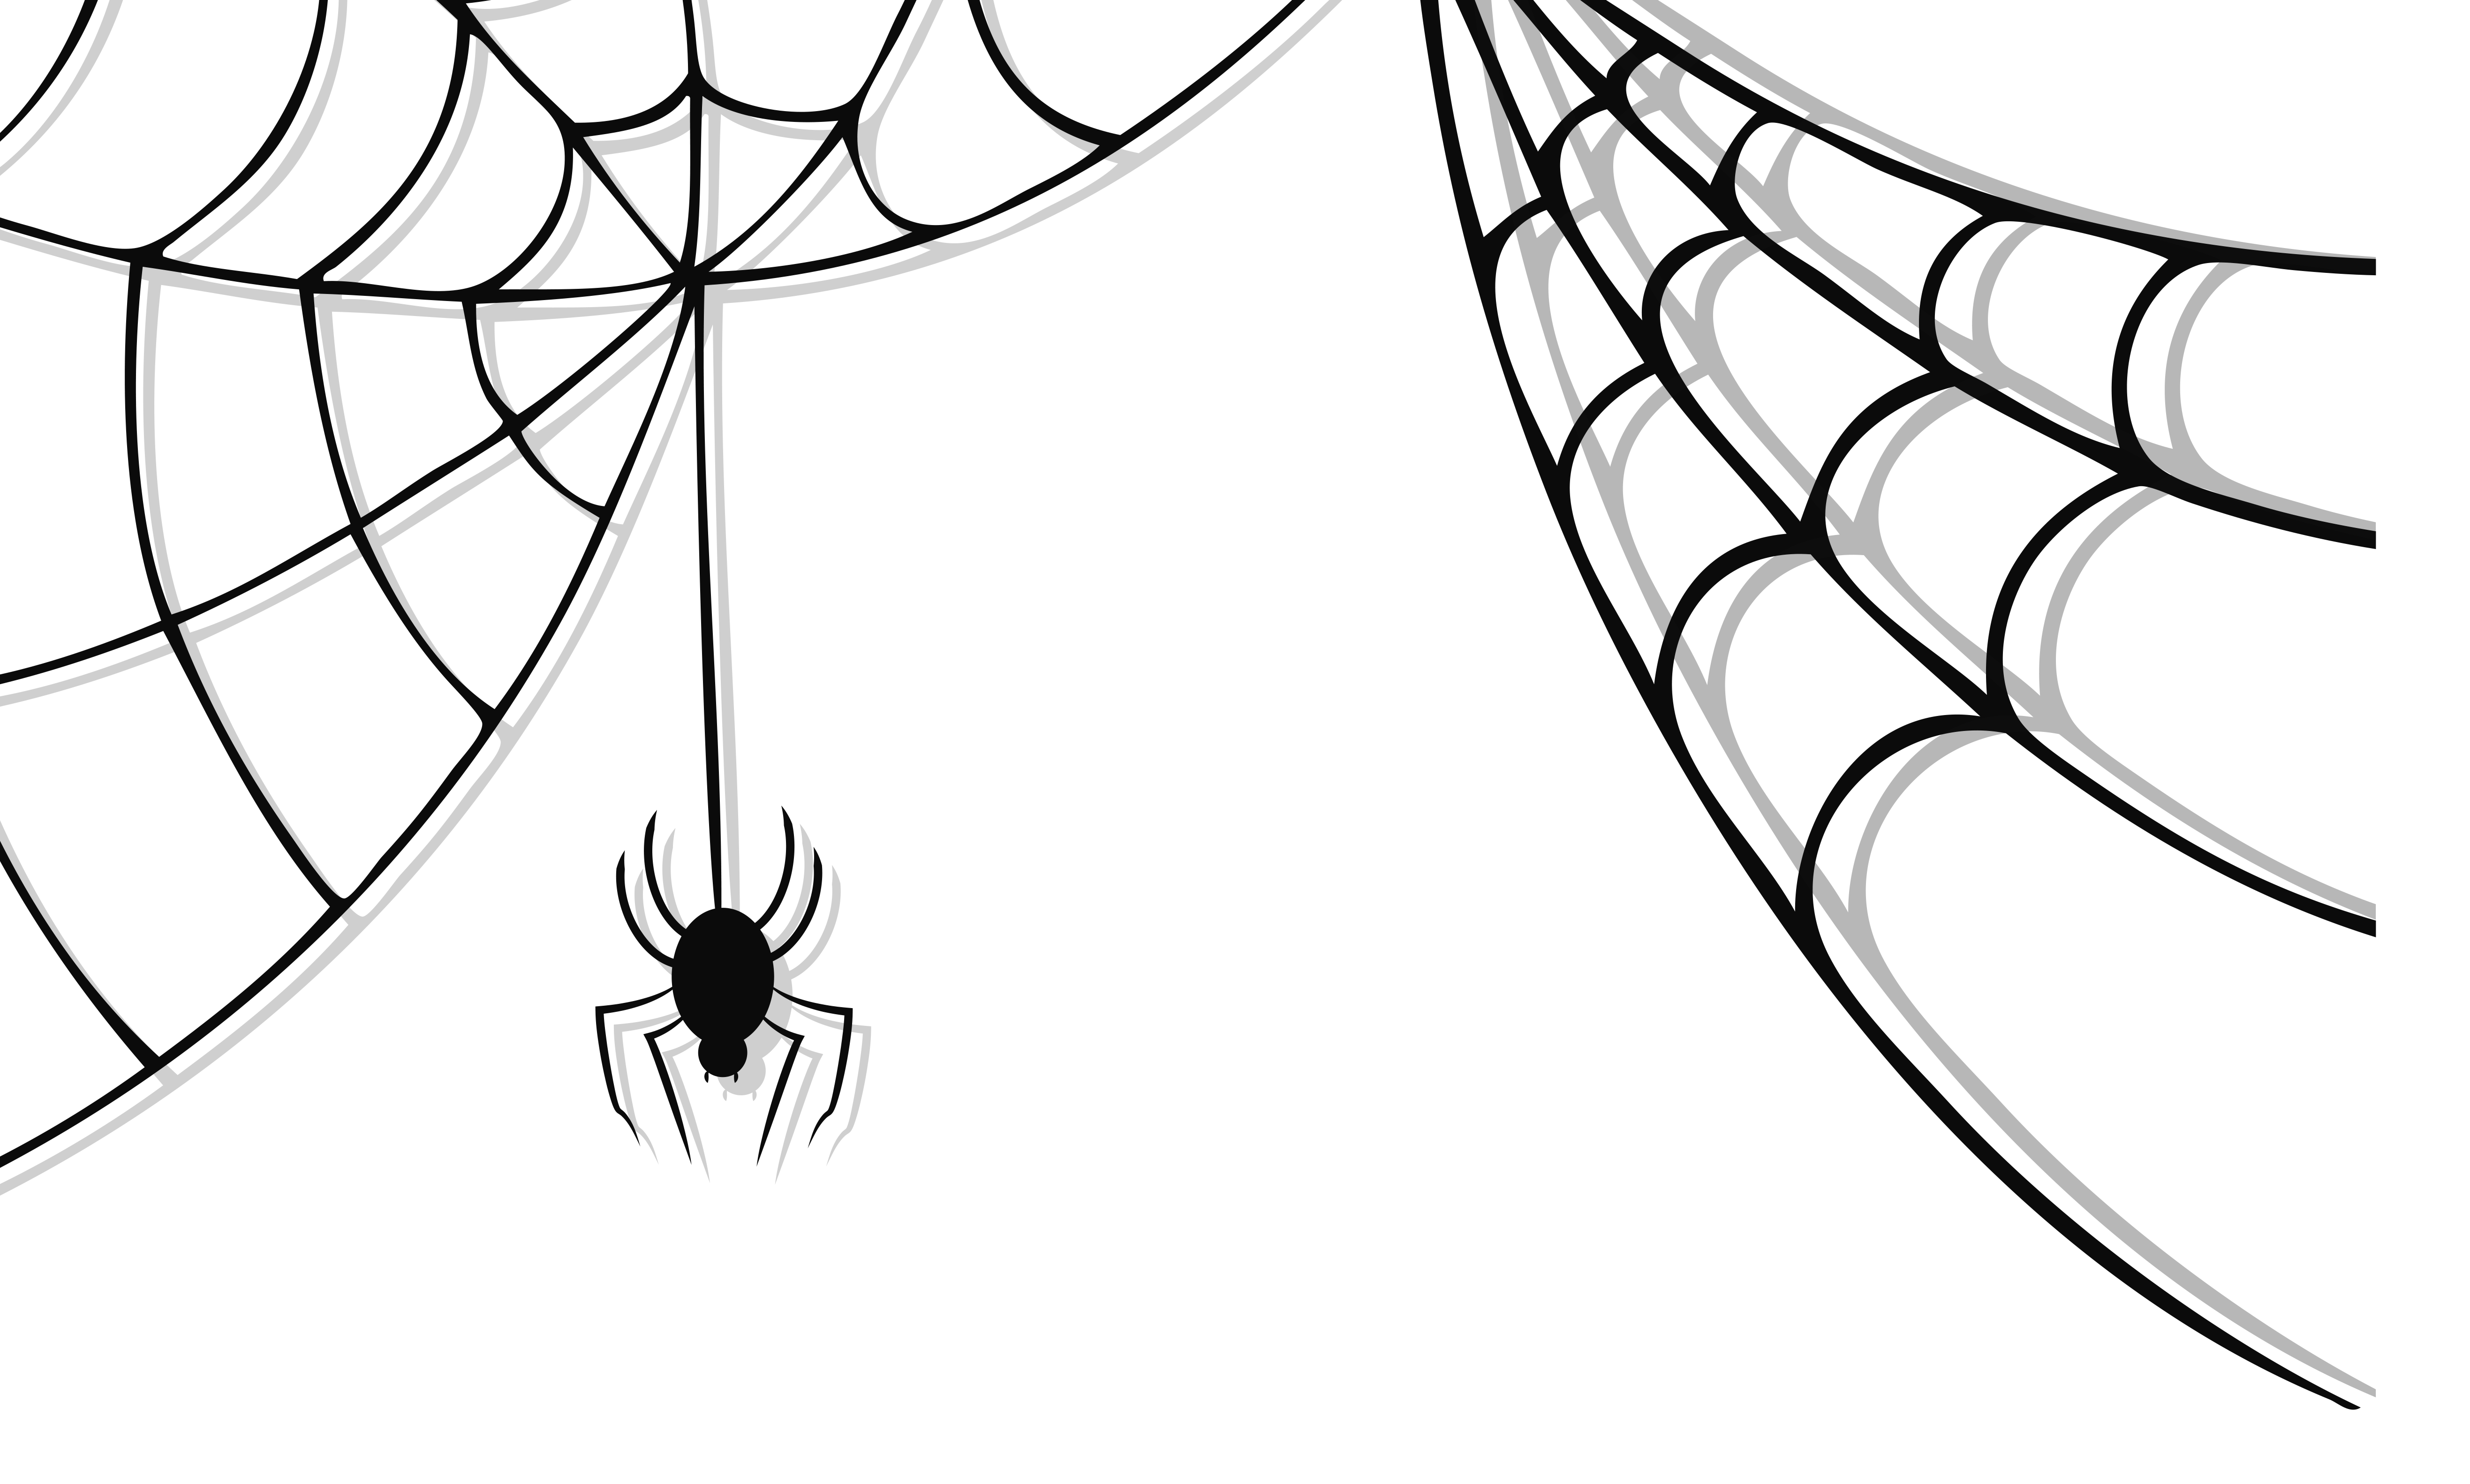 Haunted Spider and Web Clipart